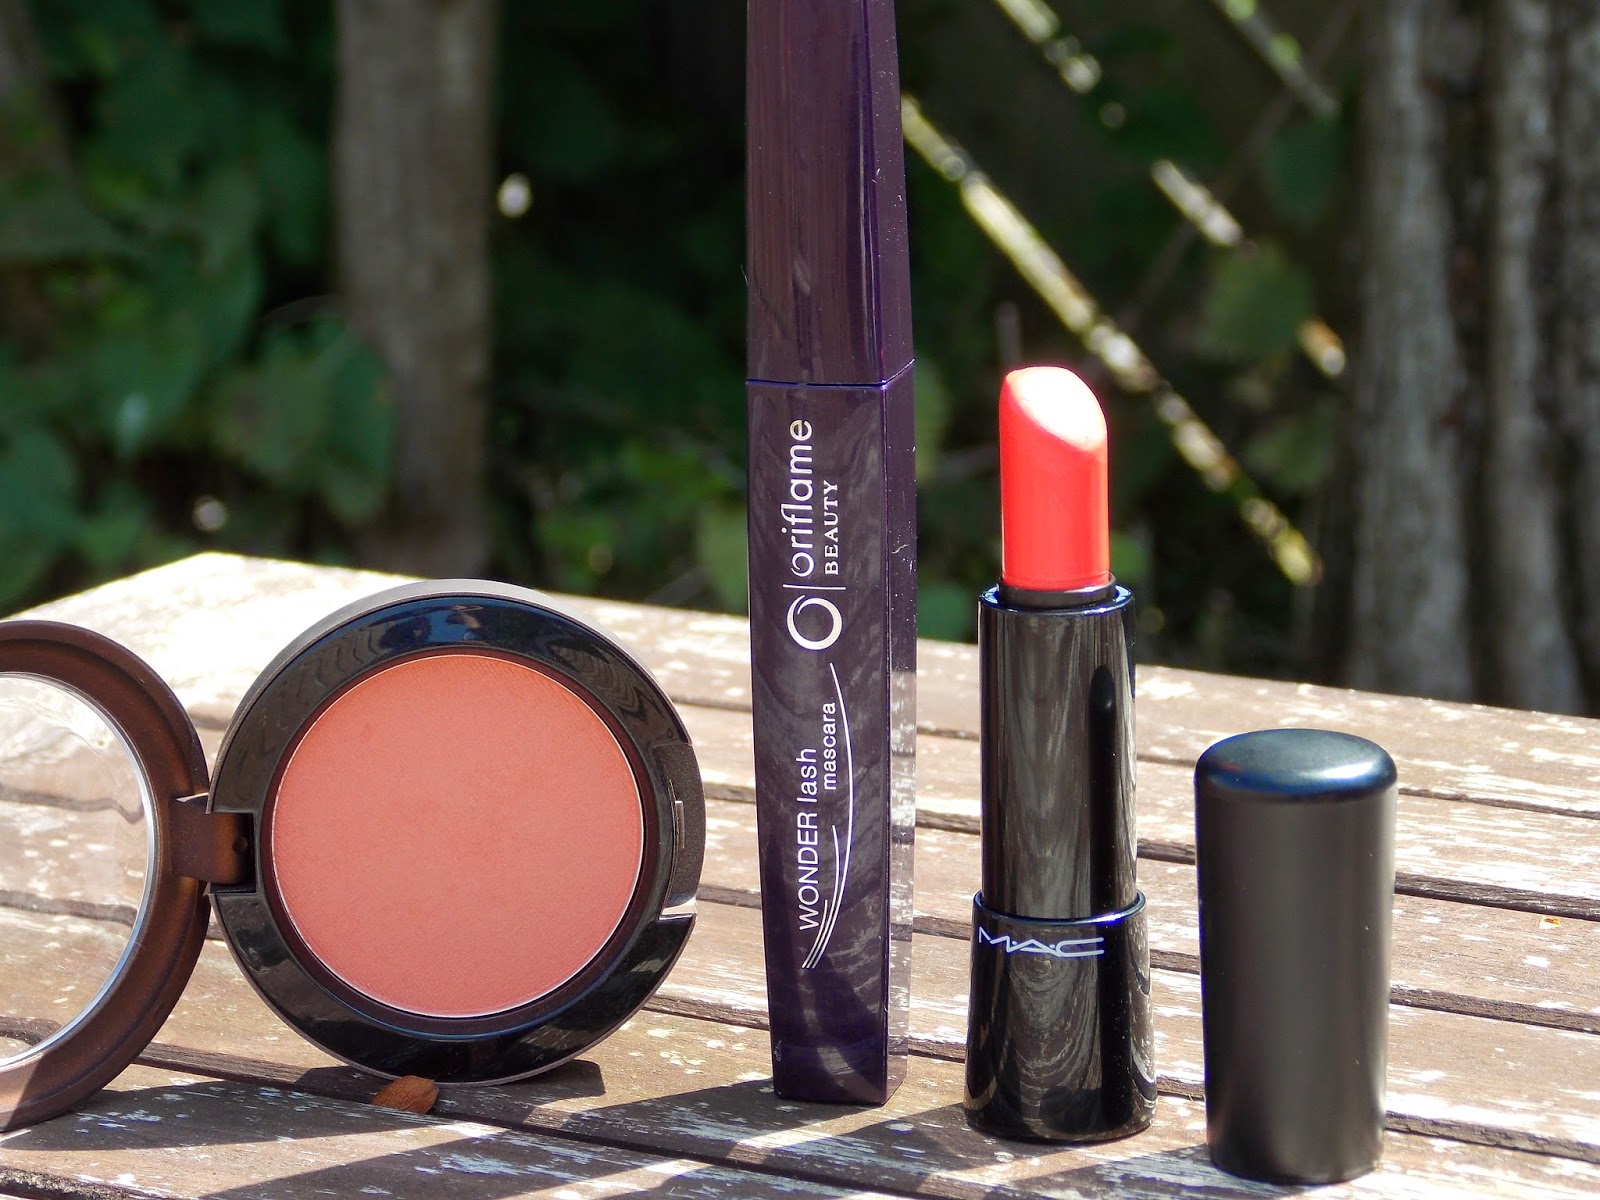 MAC Powder Blush in Ripe for Love, Oriflame Wonderlash Mascara and MAC Mineralize Lipstick in Lady at Play